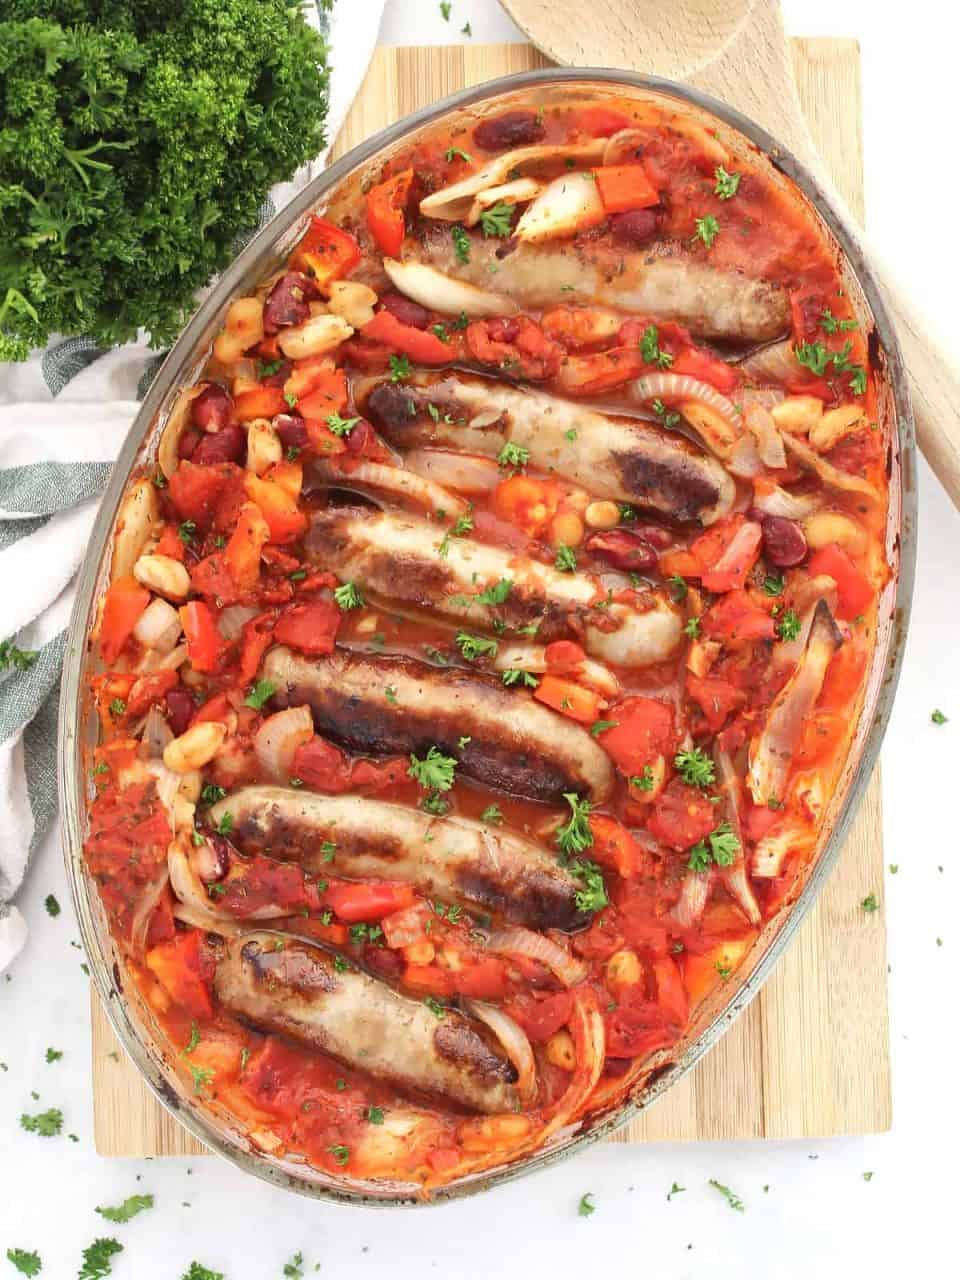 Sausage and bean casserole in a baking dish next to a wooden spoon and fresh herbs.